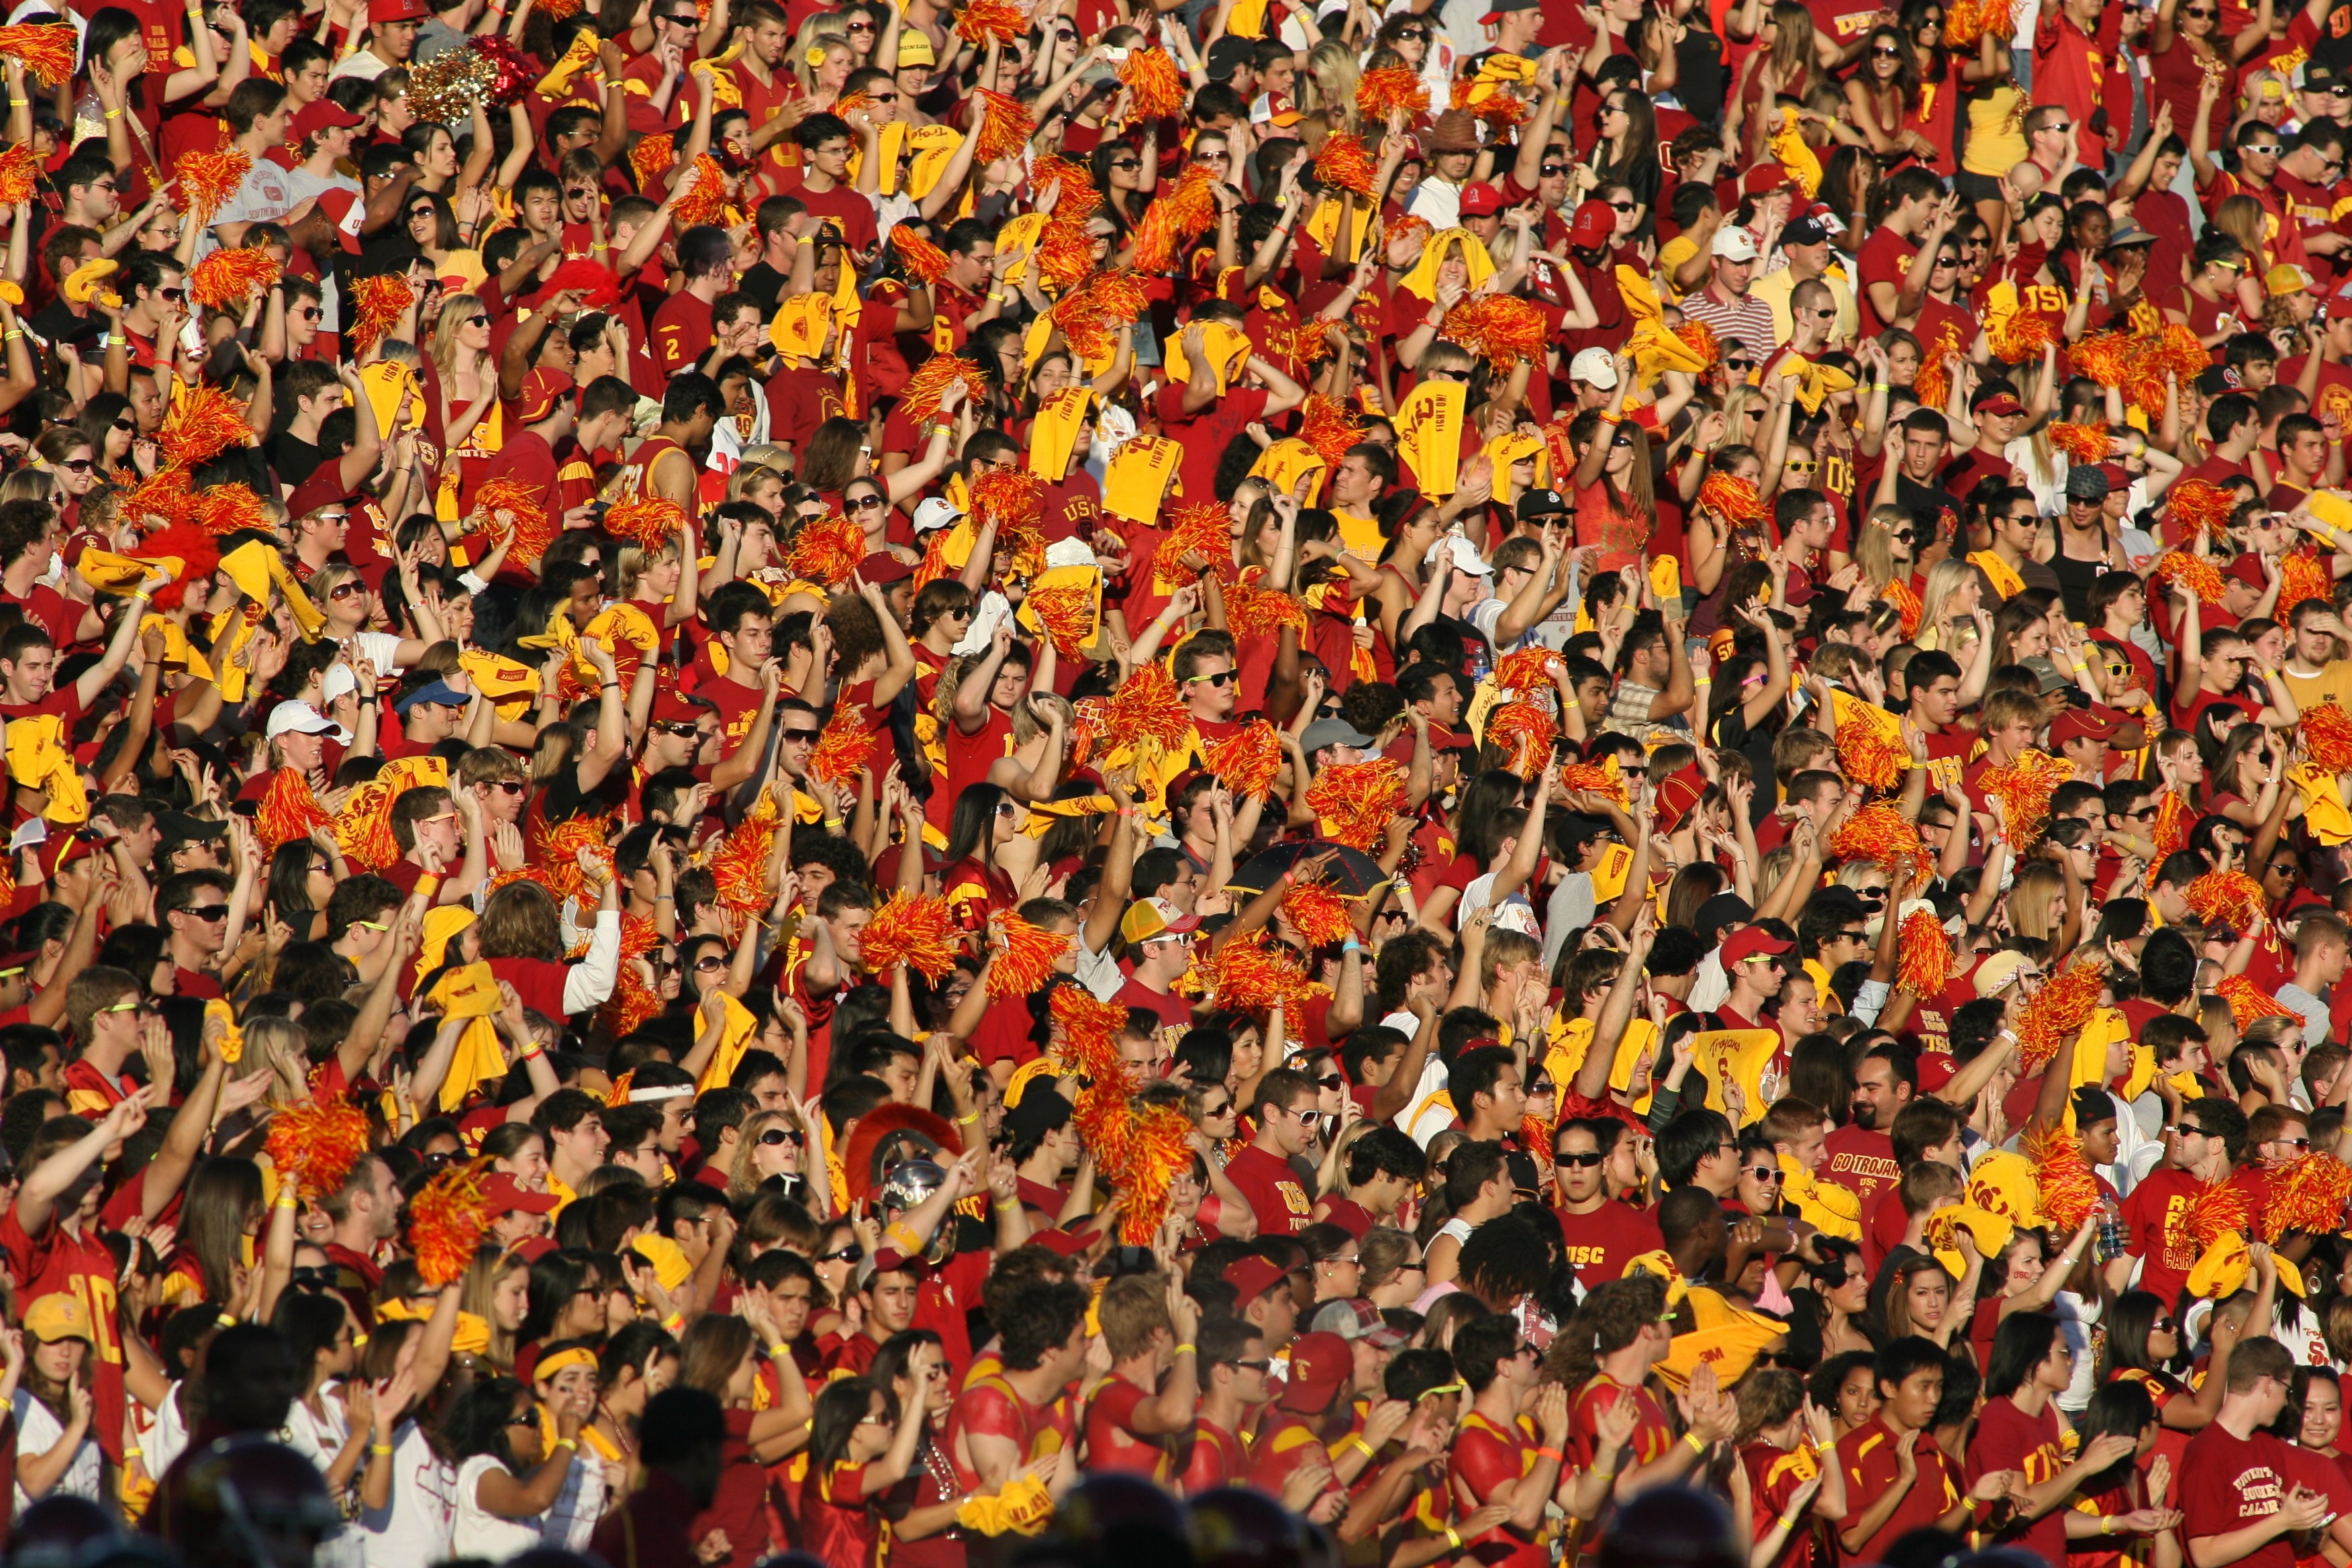 LOS ANGELES, CA - OCTOBER 24:  Fans of the USC Trojans dressed in team colors wave pon pons and yellow towels in the autumn sun during the game against the Oregon State Beavers on October 24, 2009 at the Los Angeles Coliseum in Los Angeles, California.  U